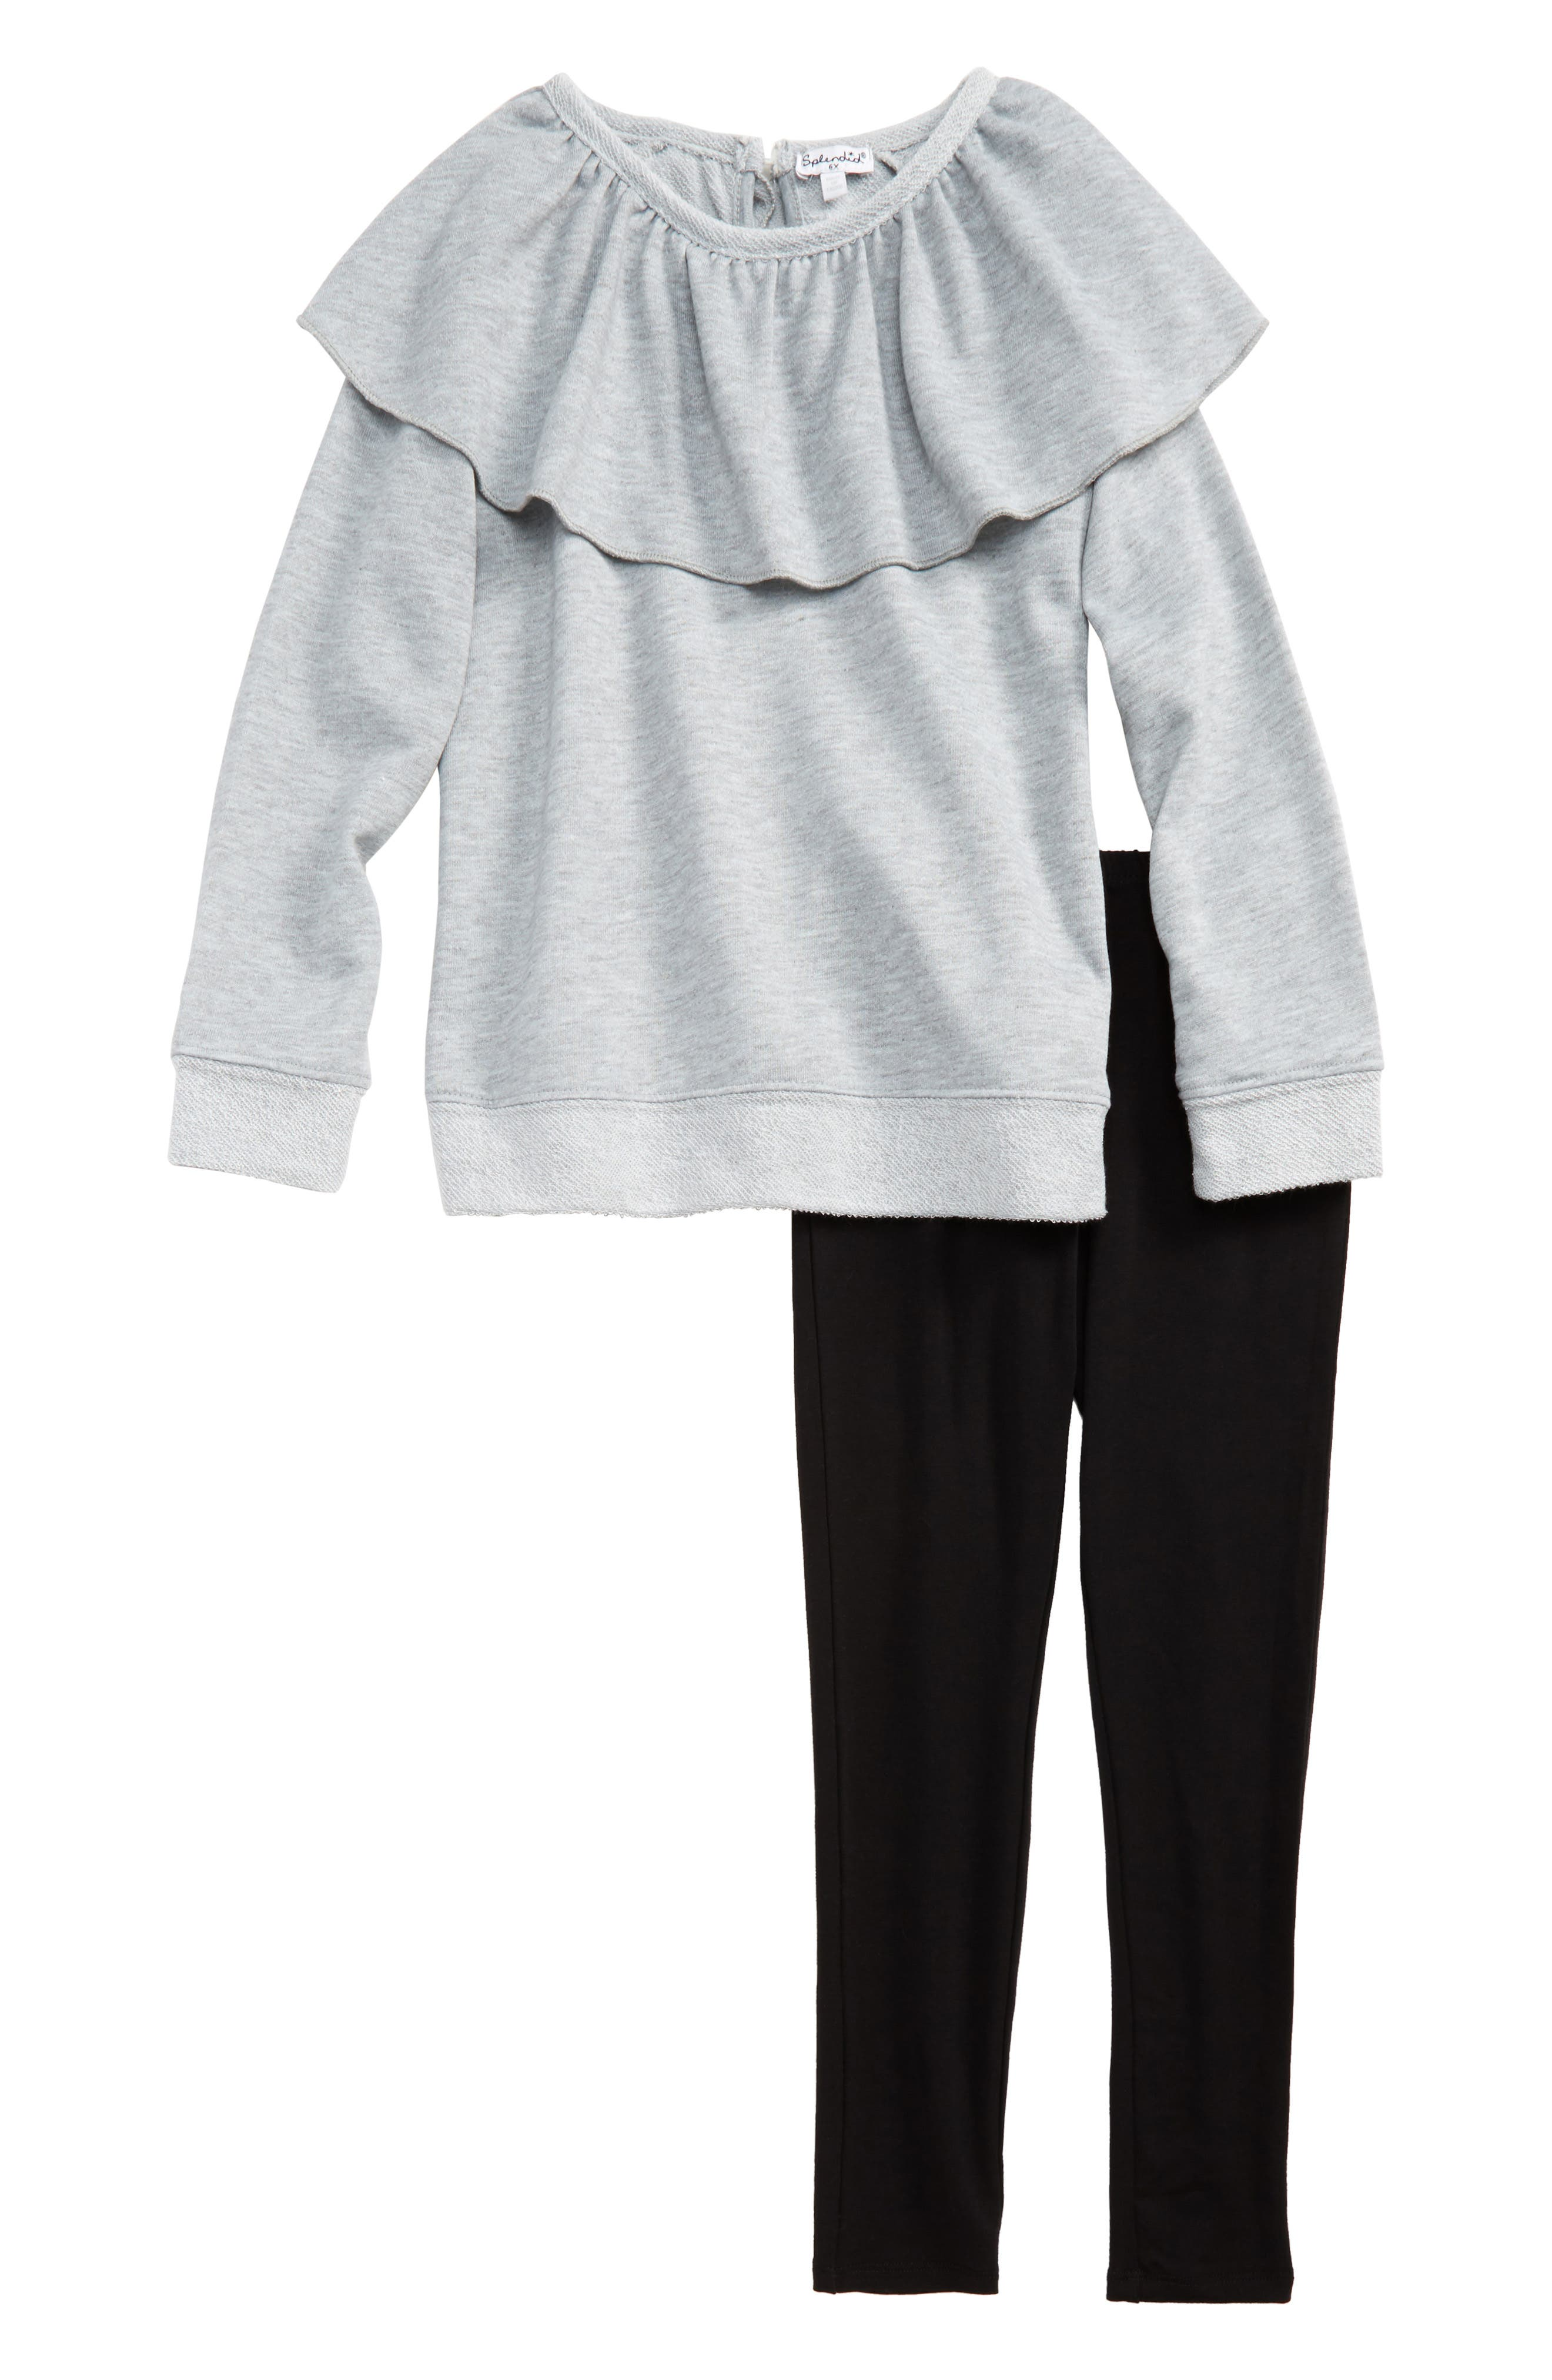 Splendid Sweatshirt & Leggings Set (Toddler Girls & Little Girls)